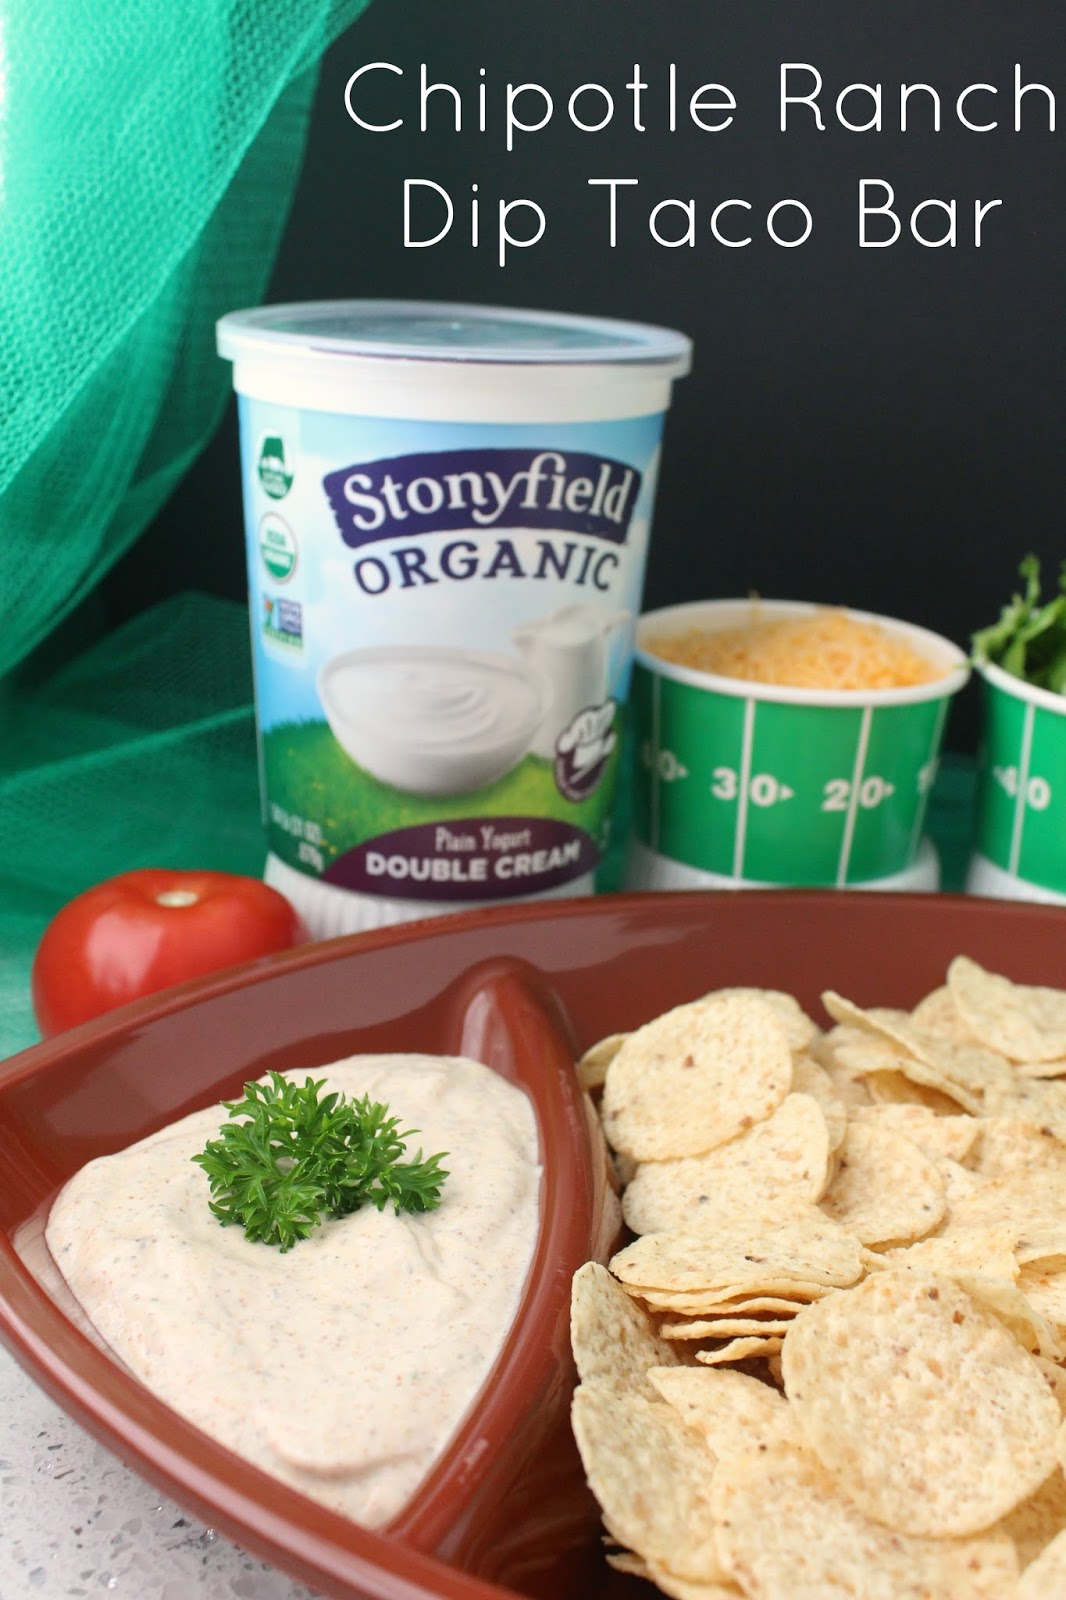 Chipotle Ranch Dip Taco Bar #StonyfieldBlogger from LoveandConfections ...